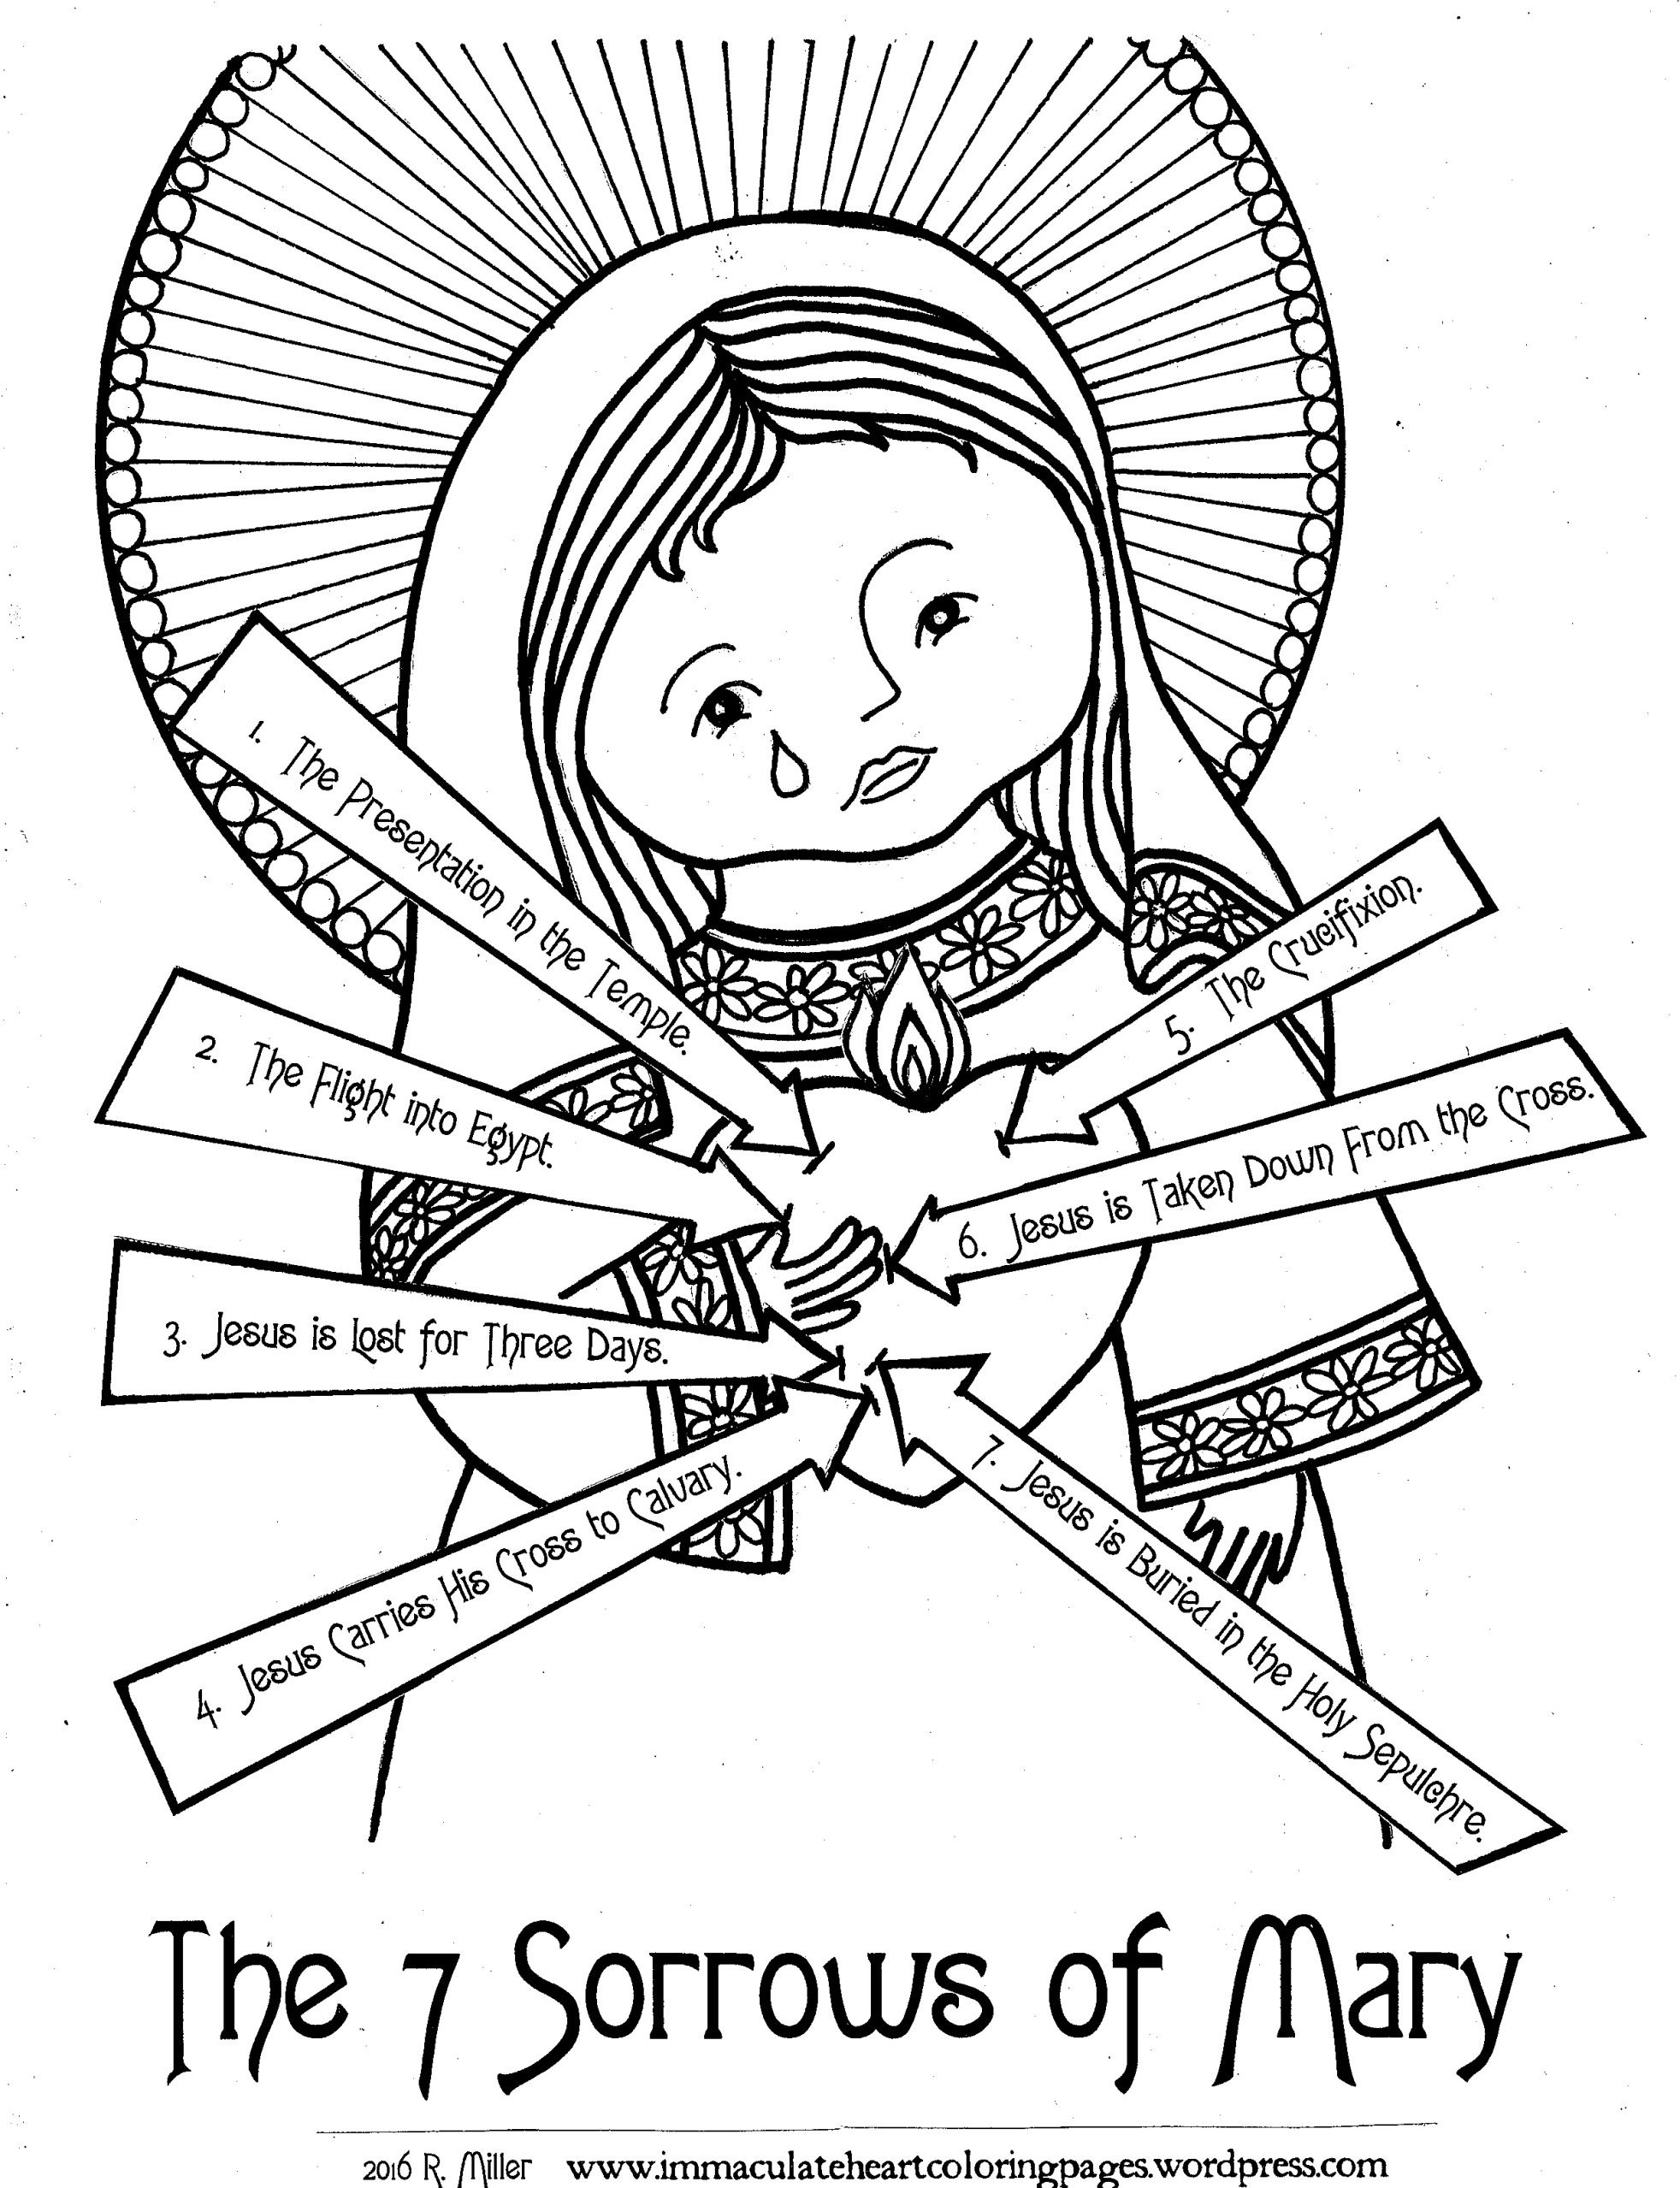 Seven Sorrows Of Mary Coloring Page For The Season Of Lent